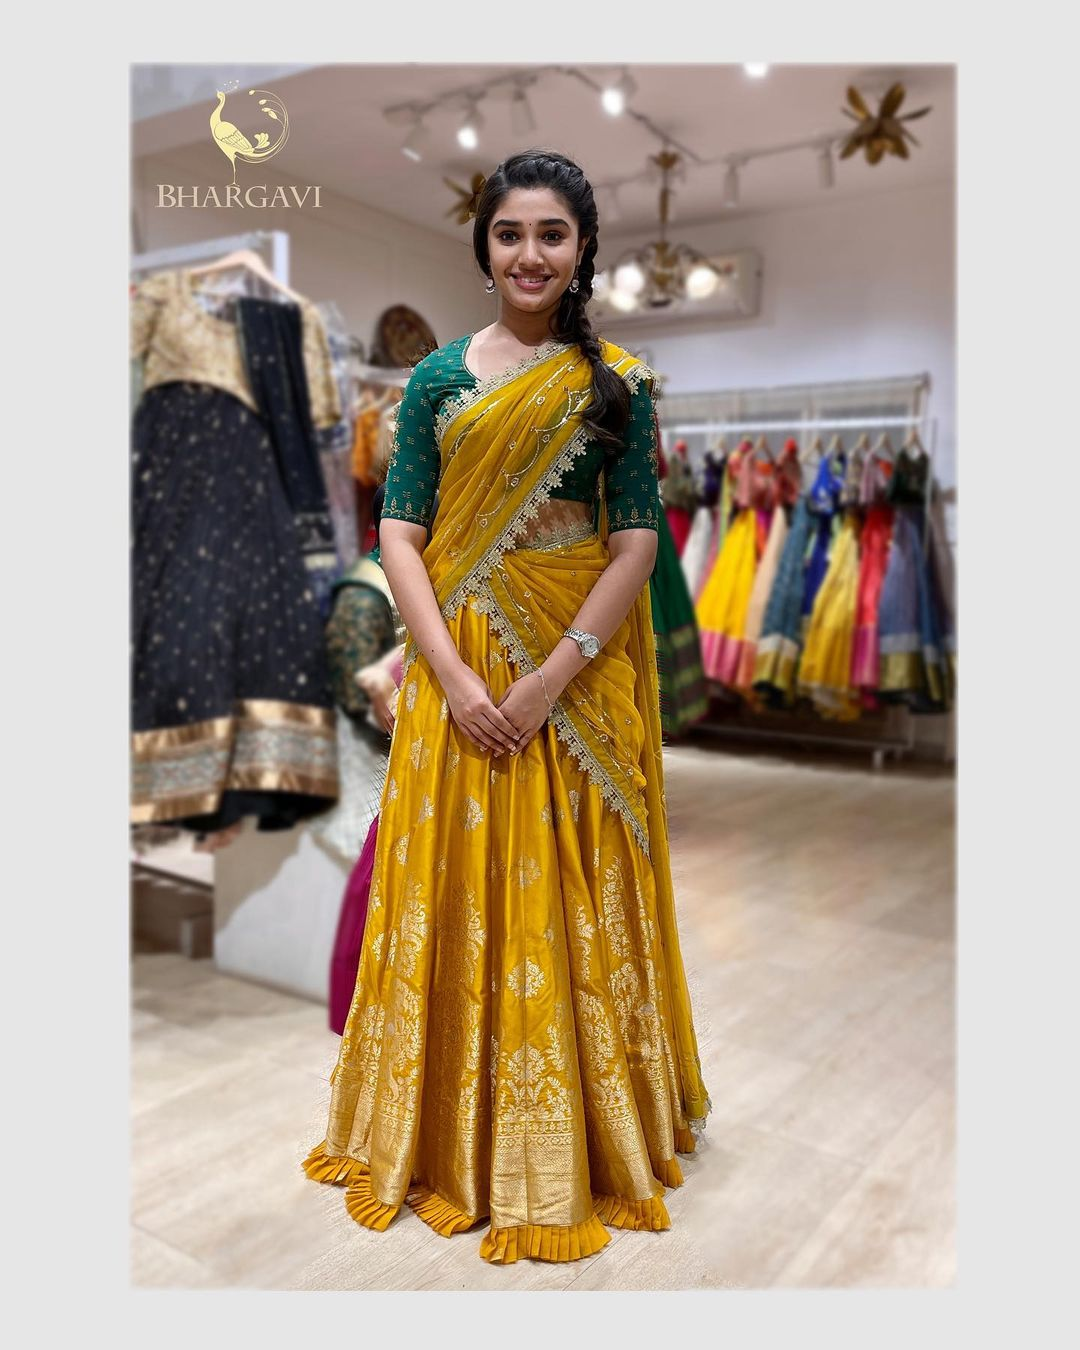 Pretty Krithi shetty for her pre events for most successful movie uppena Draped in Bhargavi kunam half saree from our latest collection! 2021-03-06